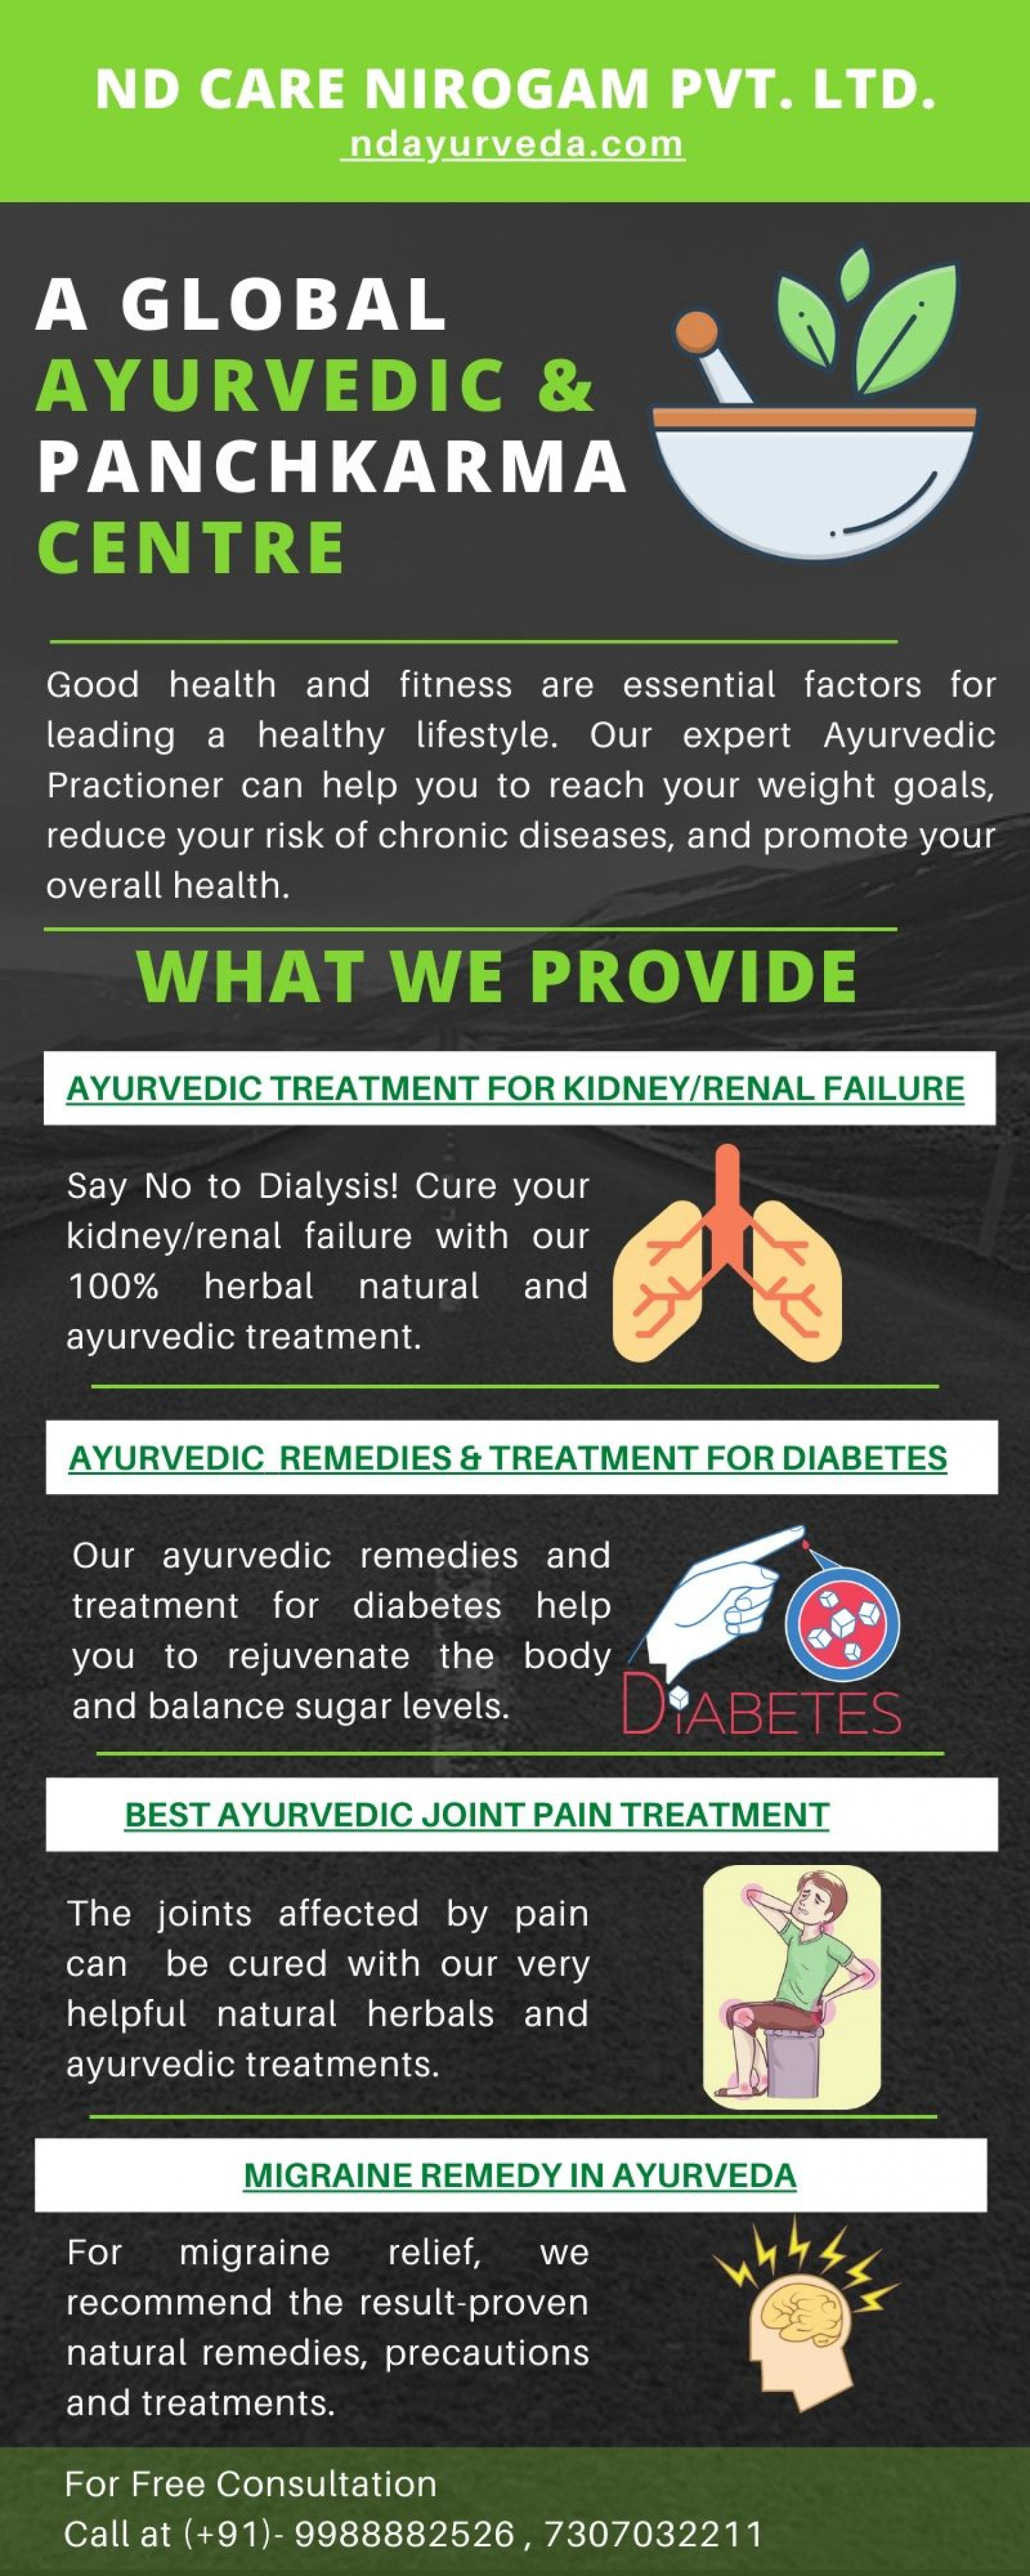 ND Care Ayurveda & Panchkarma Centre Infographic